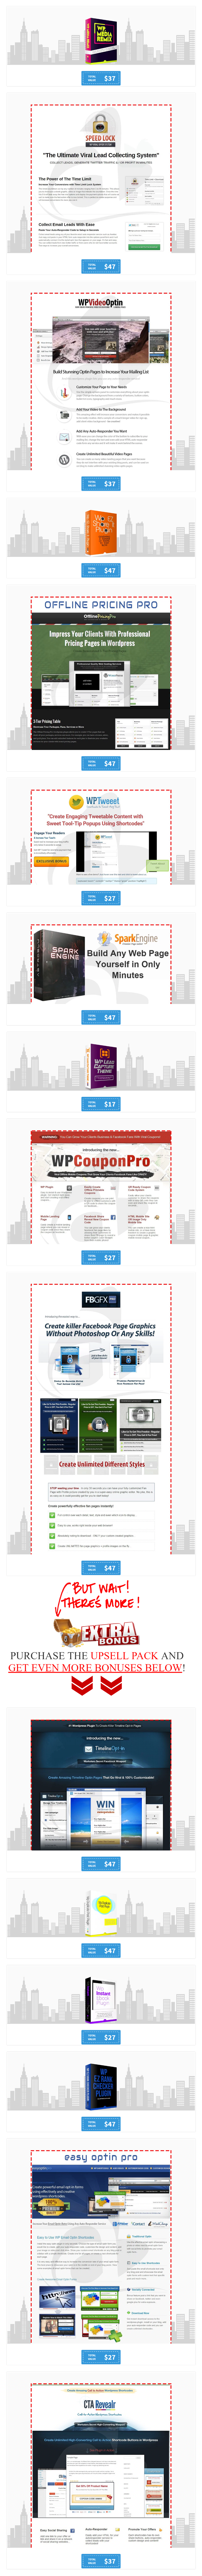 Biznala Executive Business WordPress Theme Bonuses